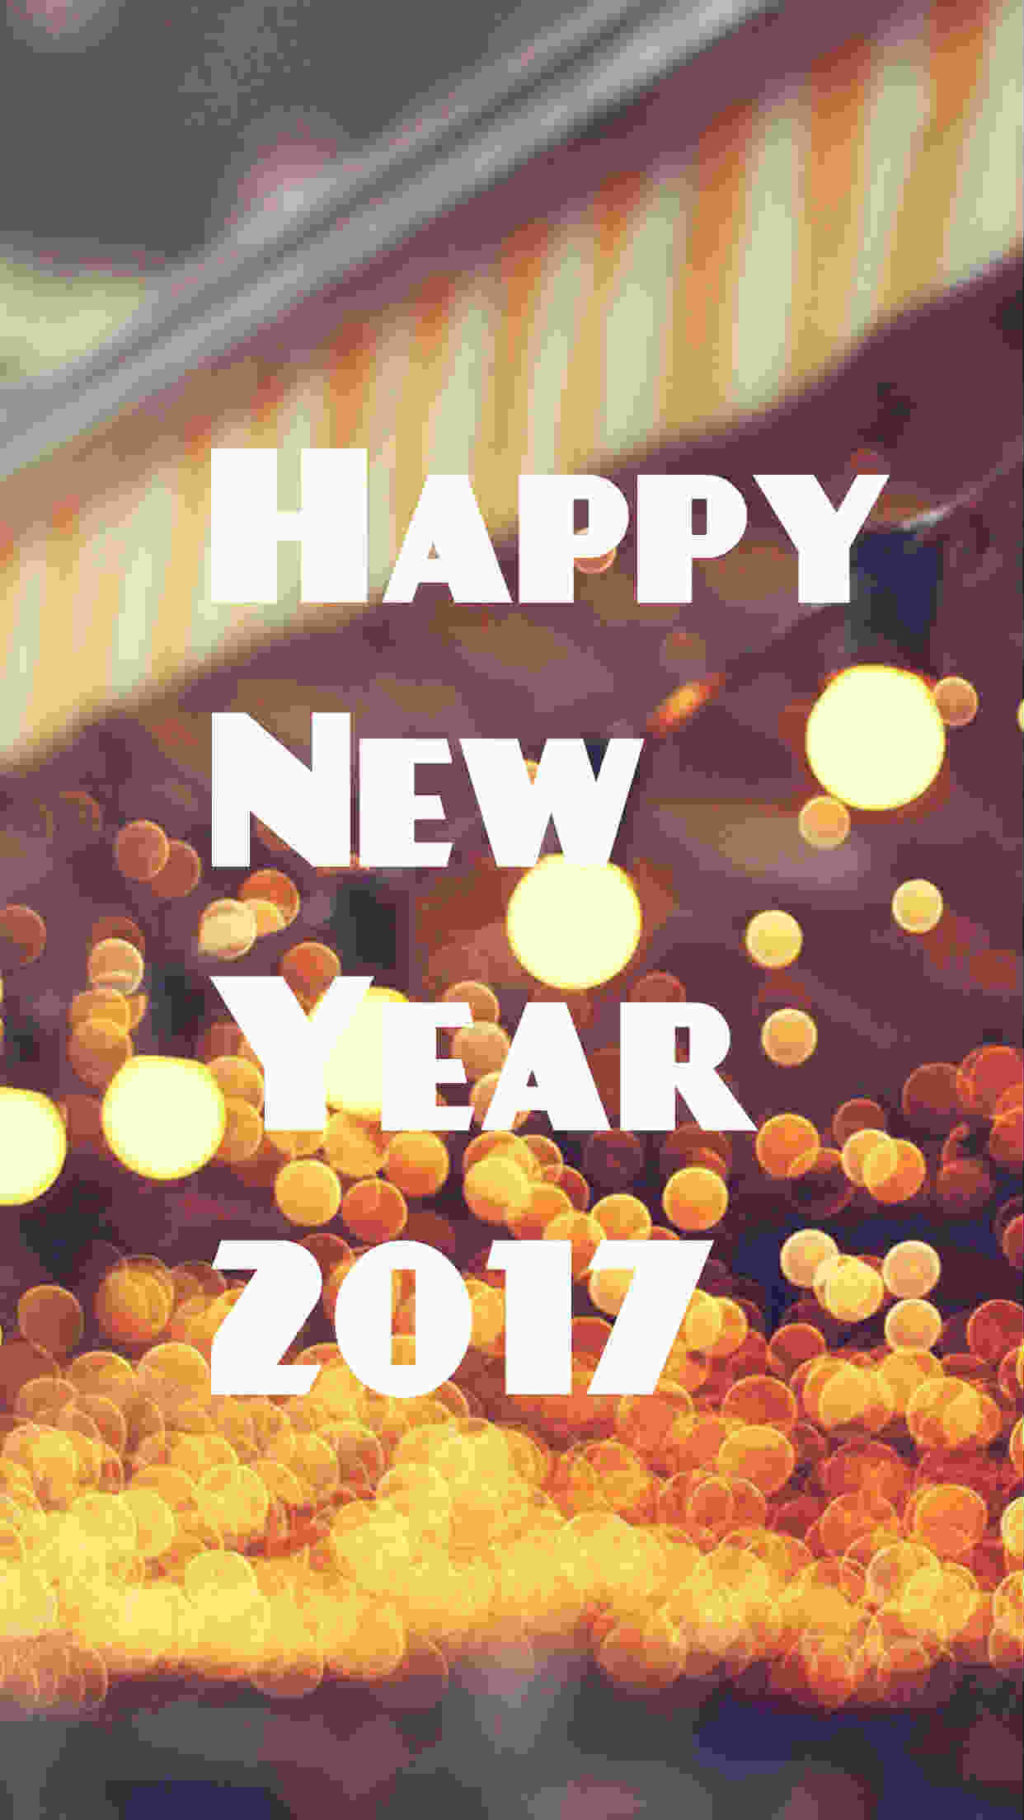 Happy New Year 2017 with glitter